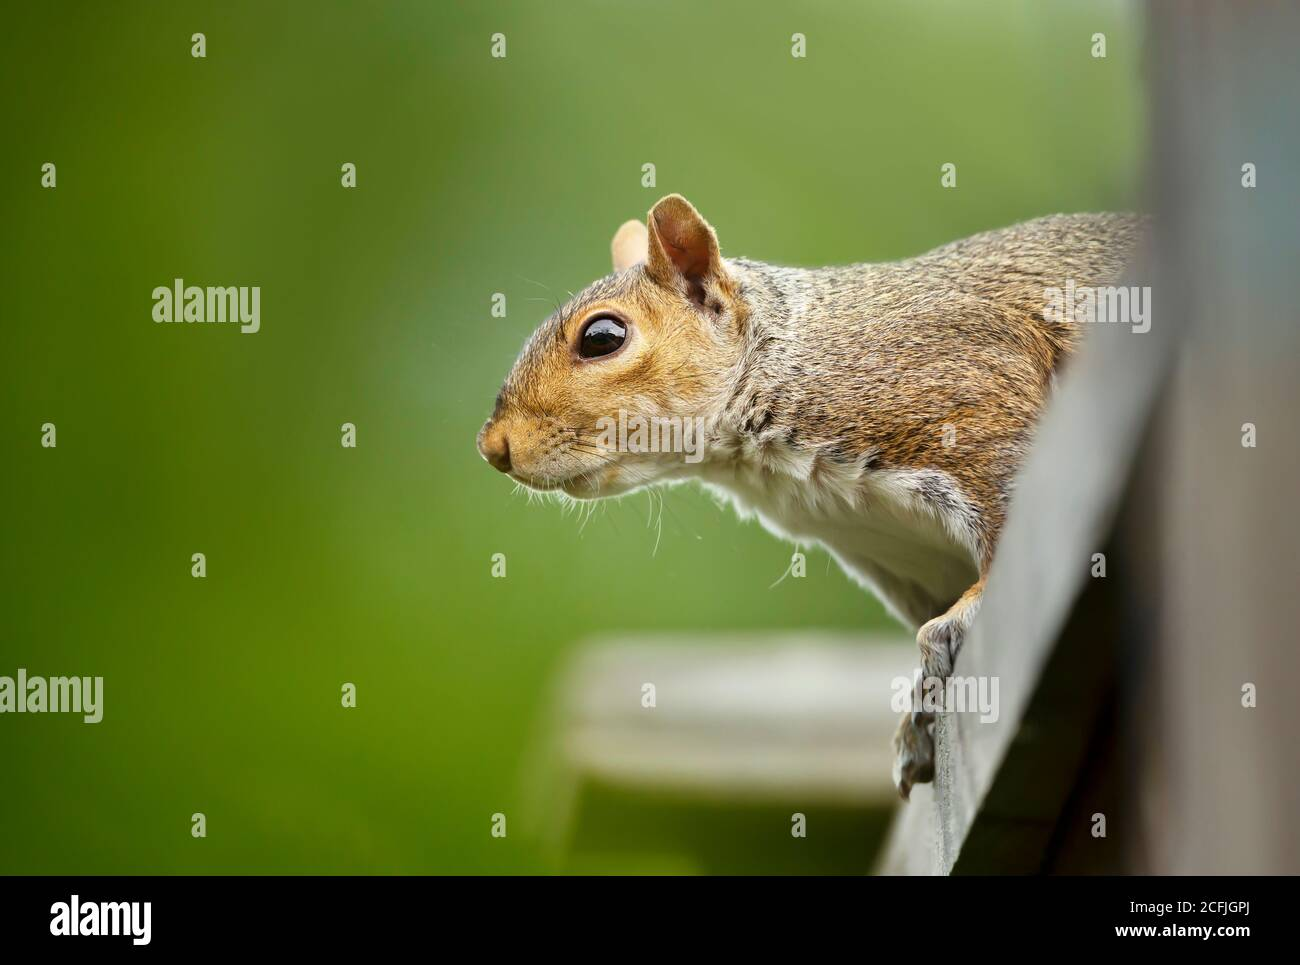 Close up of a grey squirrel sitting on a wooden fence, UK. Stock Photo